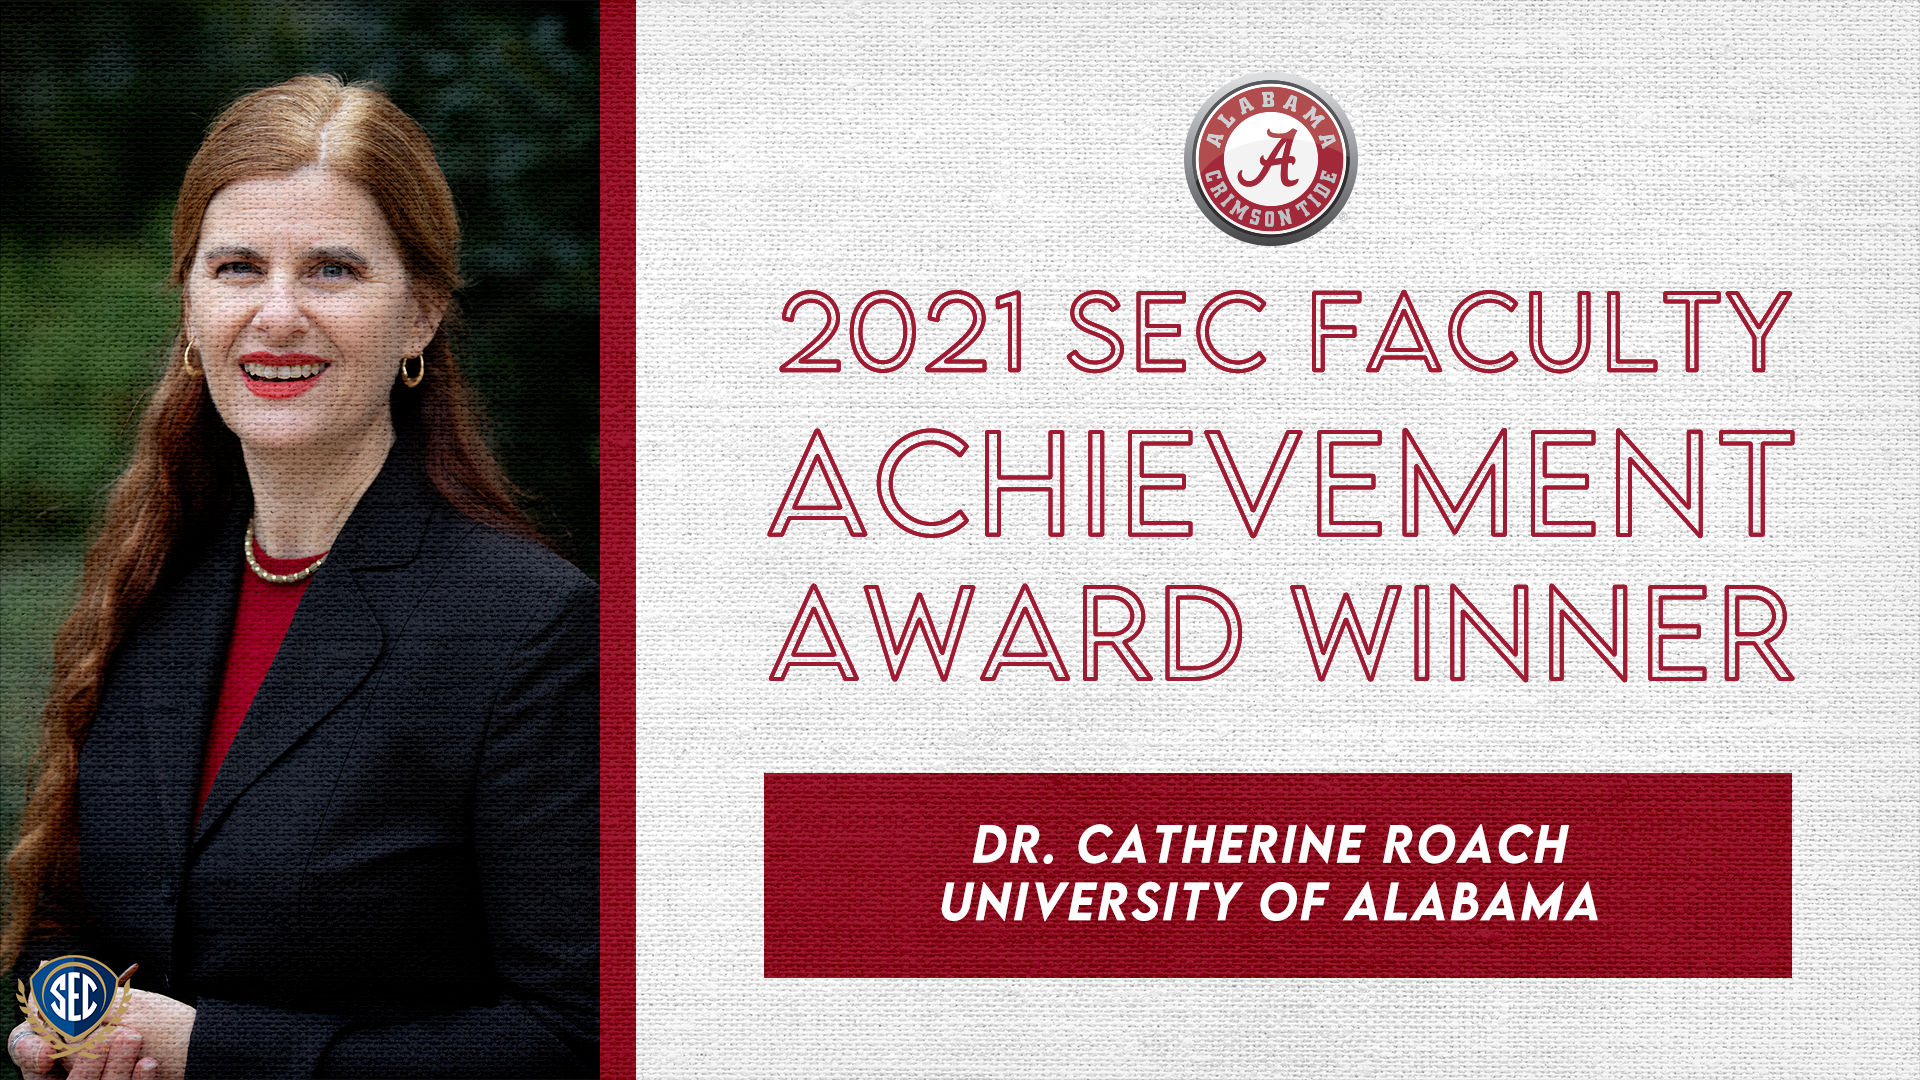 SEC Announces Dr. Catherine Roach Wins 2021 Faculty Achievement Award for University of Alabama